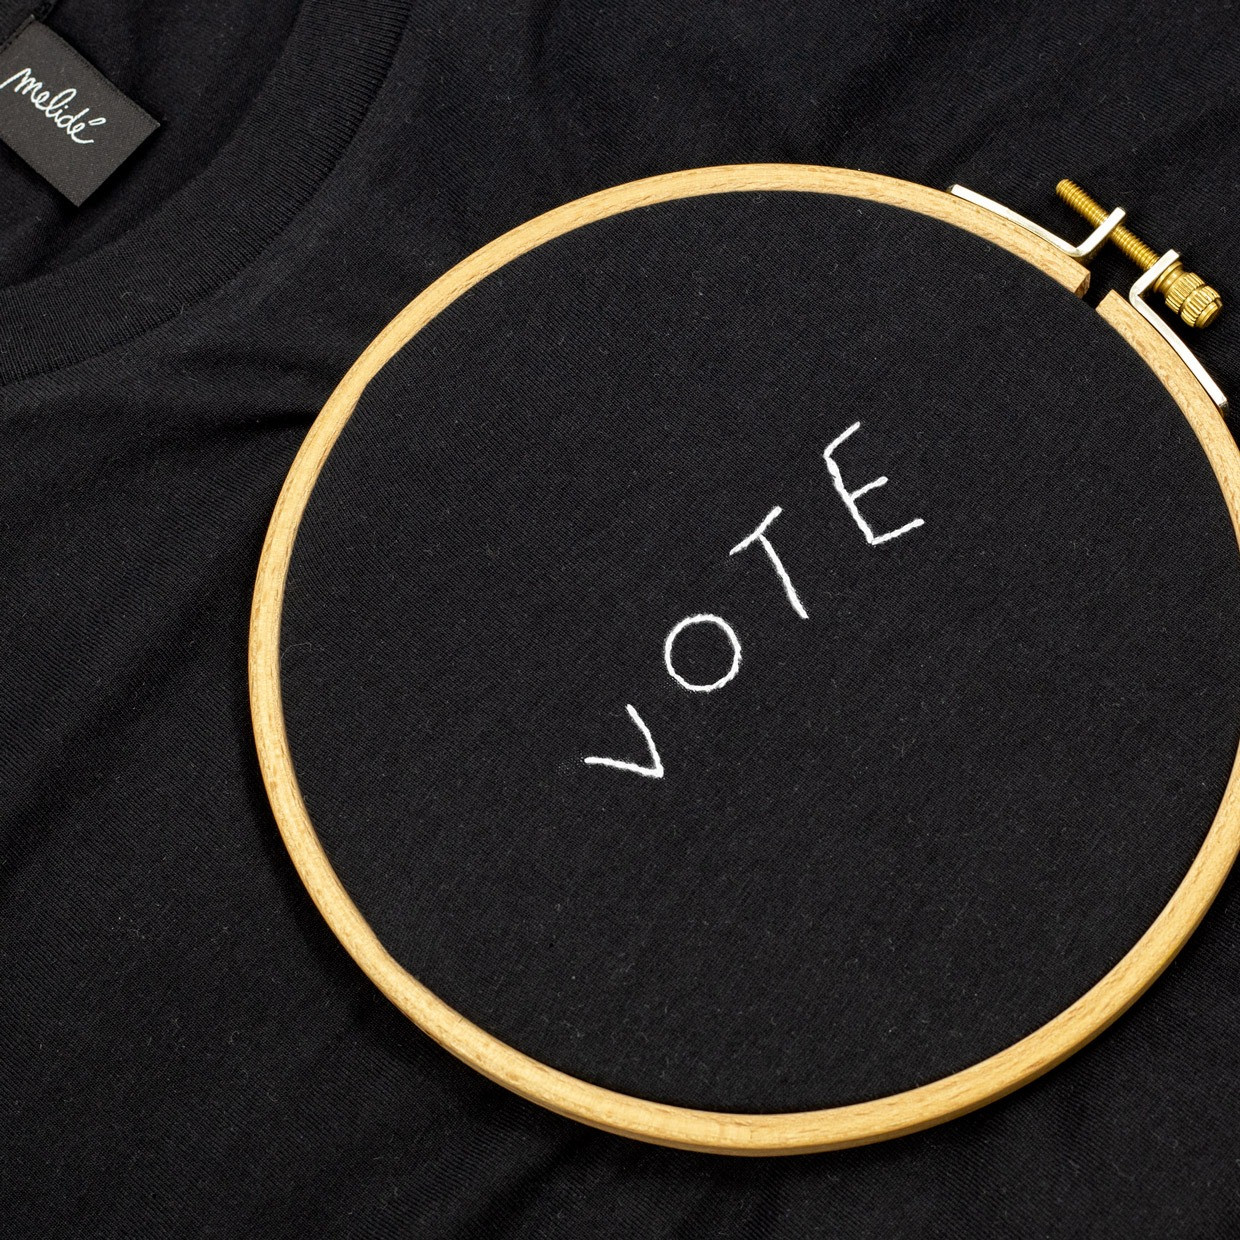 The VOTE ultimate tee